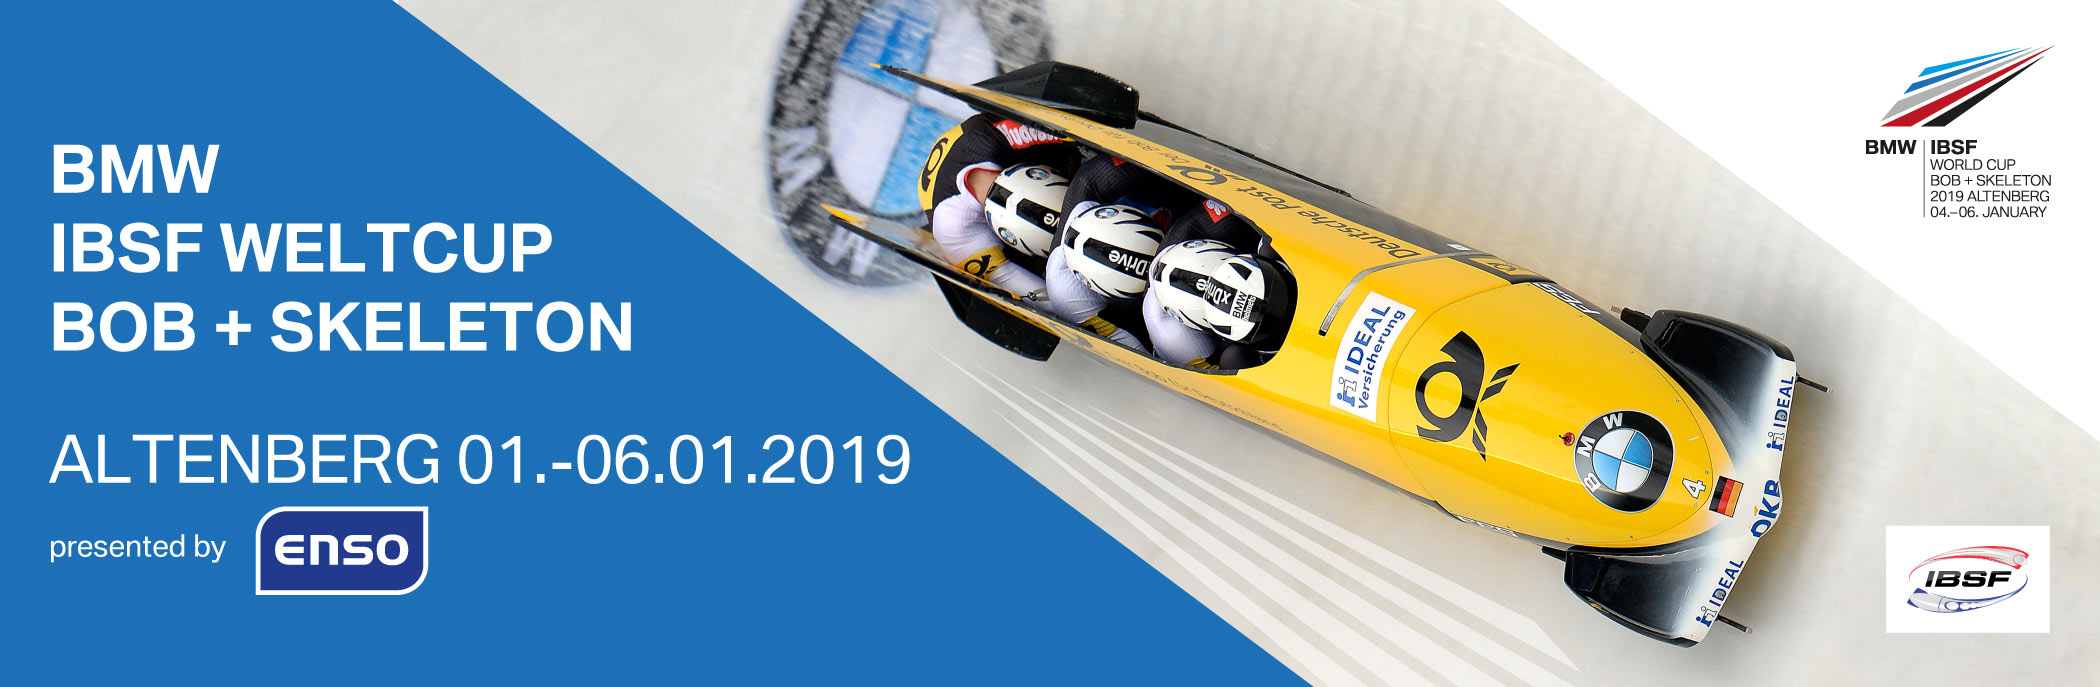 Bob-Skeleton-Weltcup-Altenberg-2019